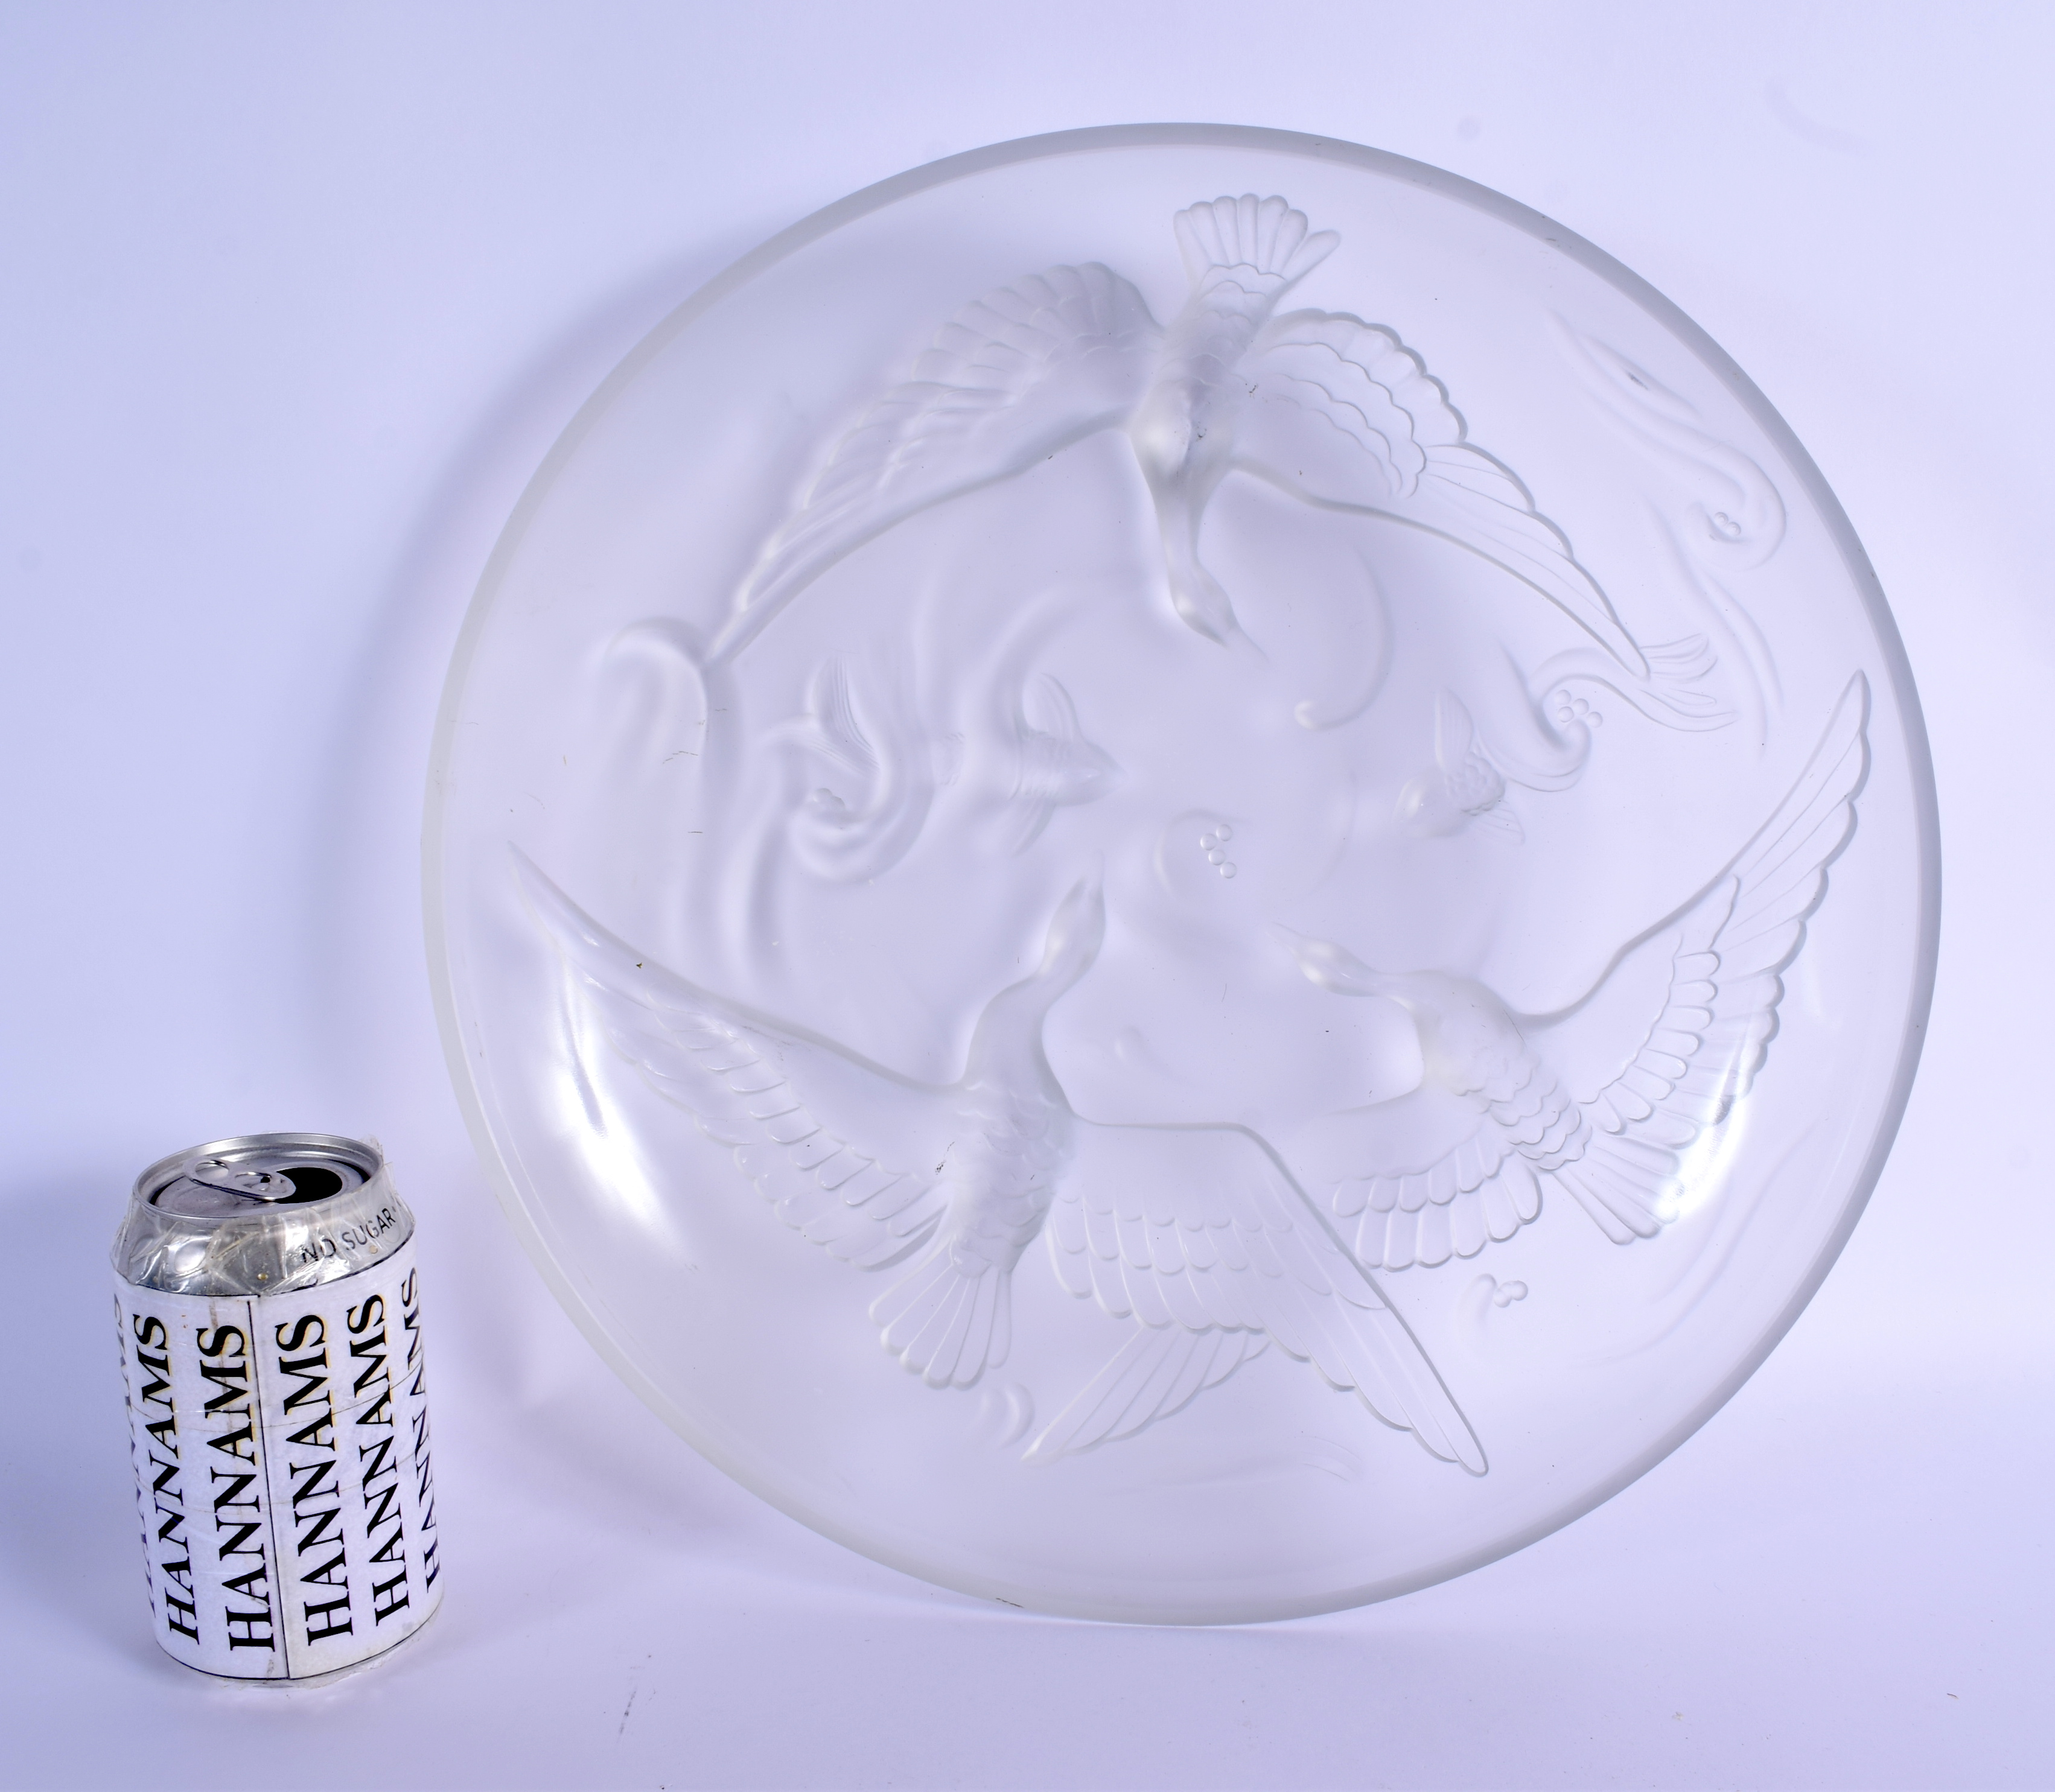 A LARGE FRENCH VERLYS MOLD LES CANARDS SAUVAGE GLASS DISH. 26 cm diameter.